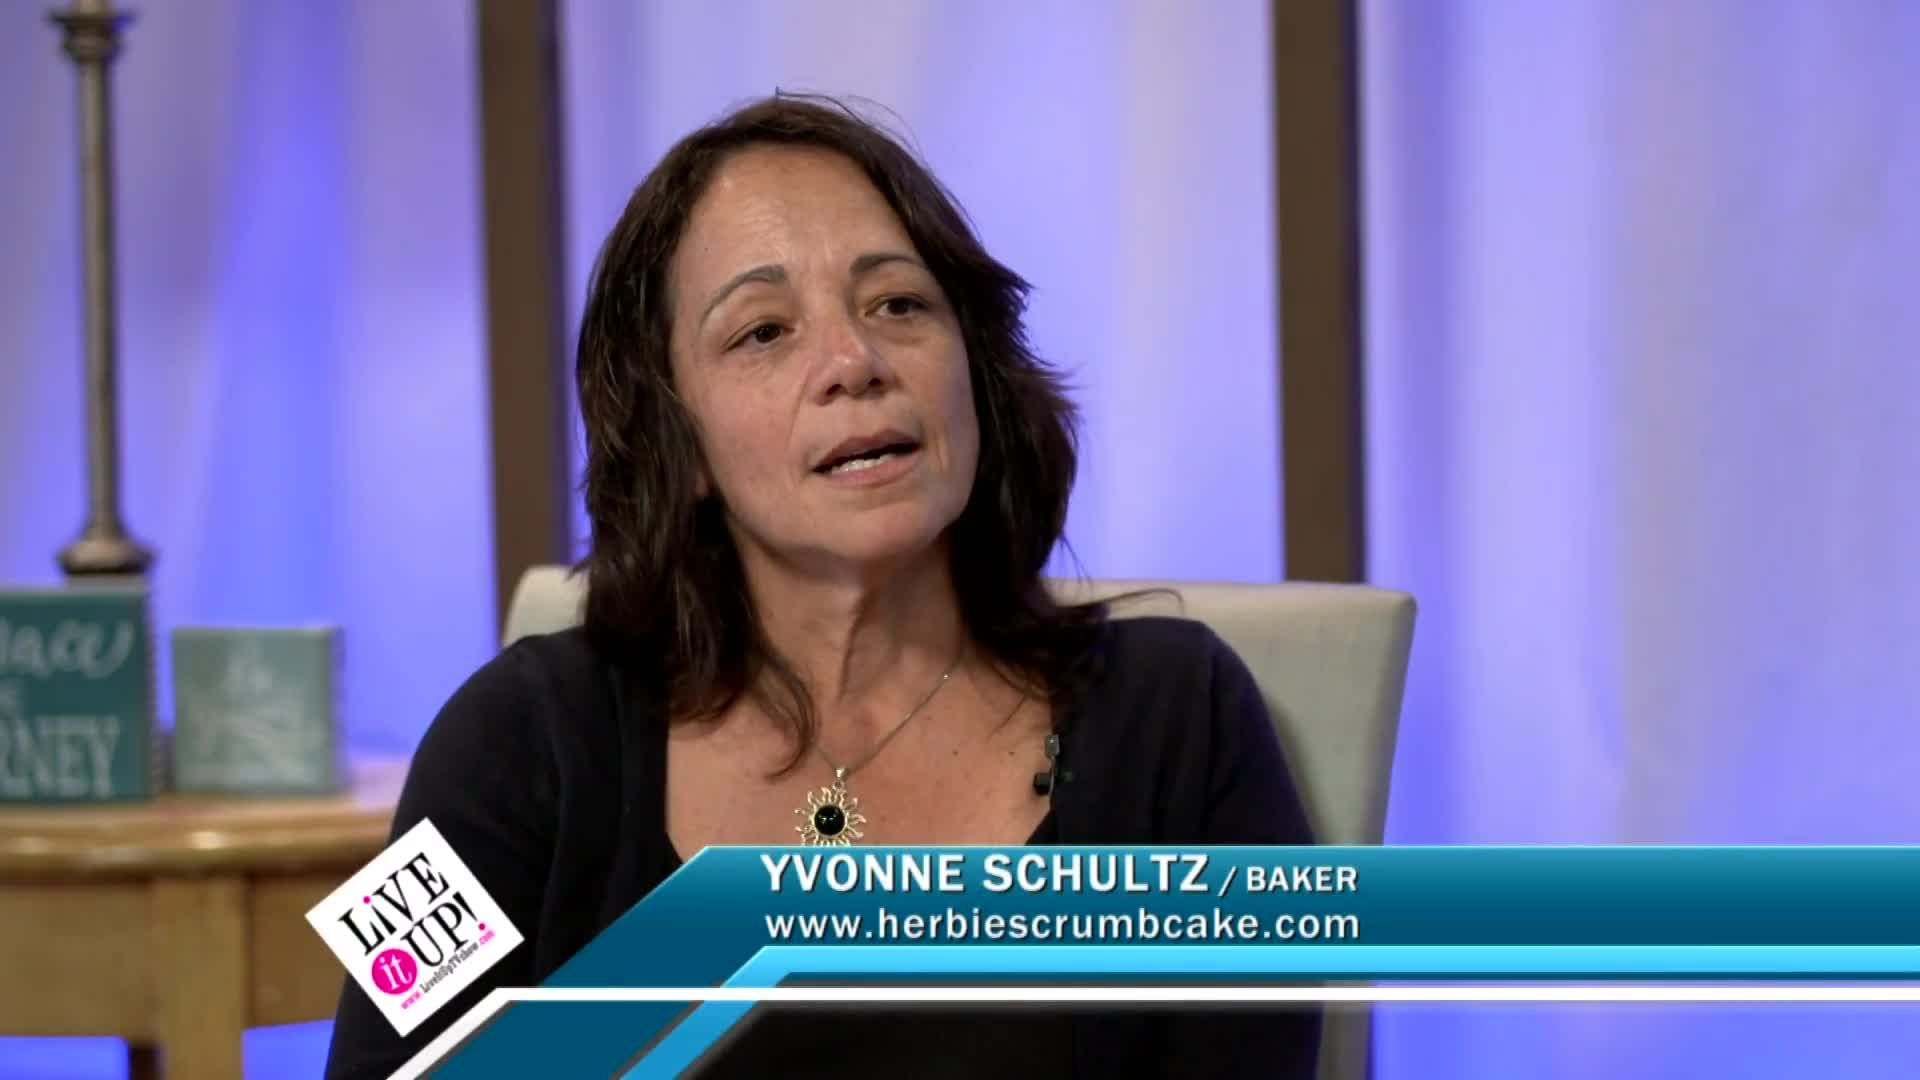 Live It Up with Donna Drake with Crumb Cake Entrepreneur Yvonne Schultz